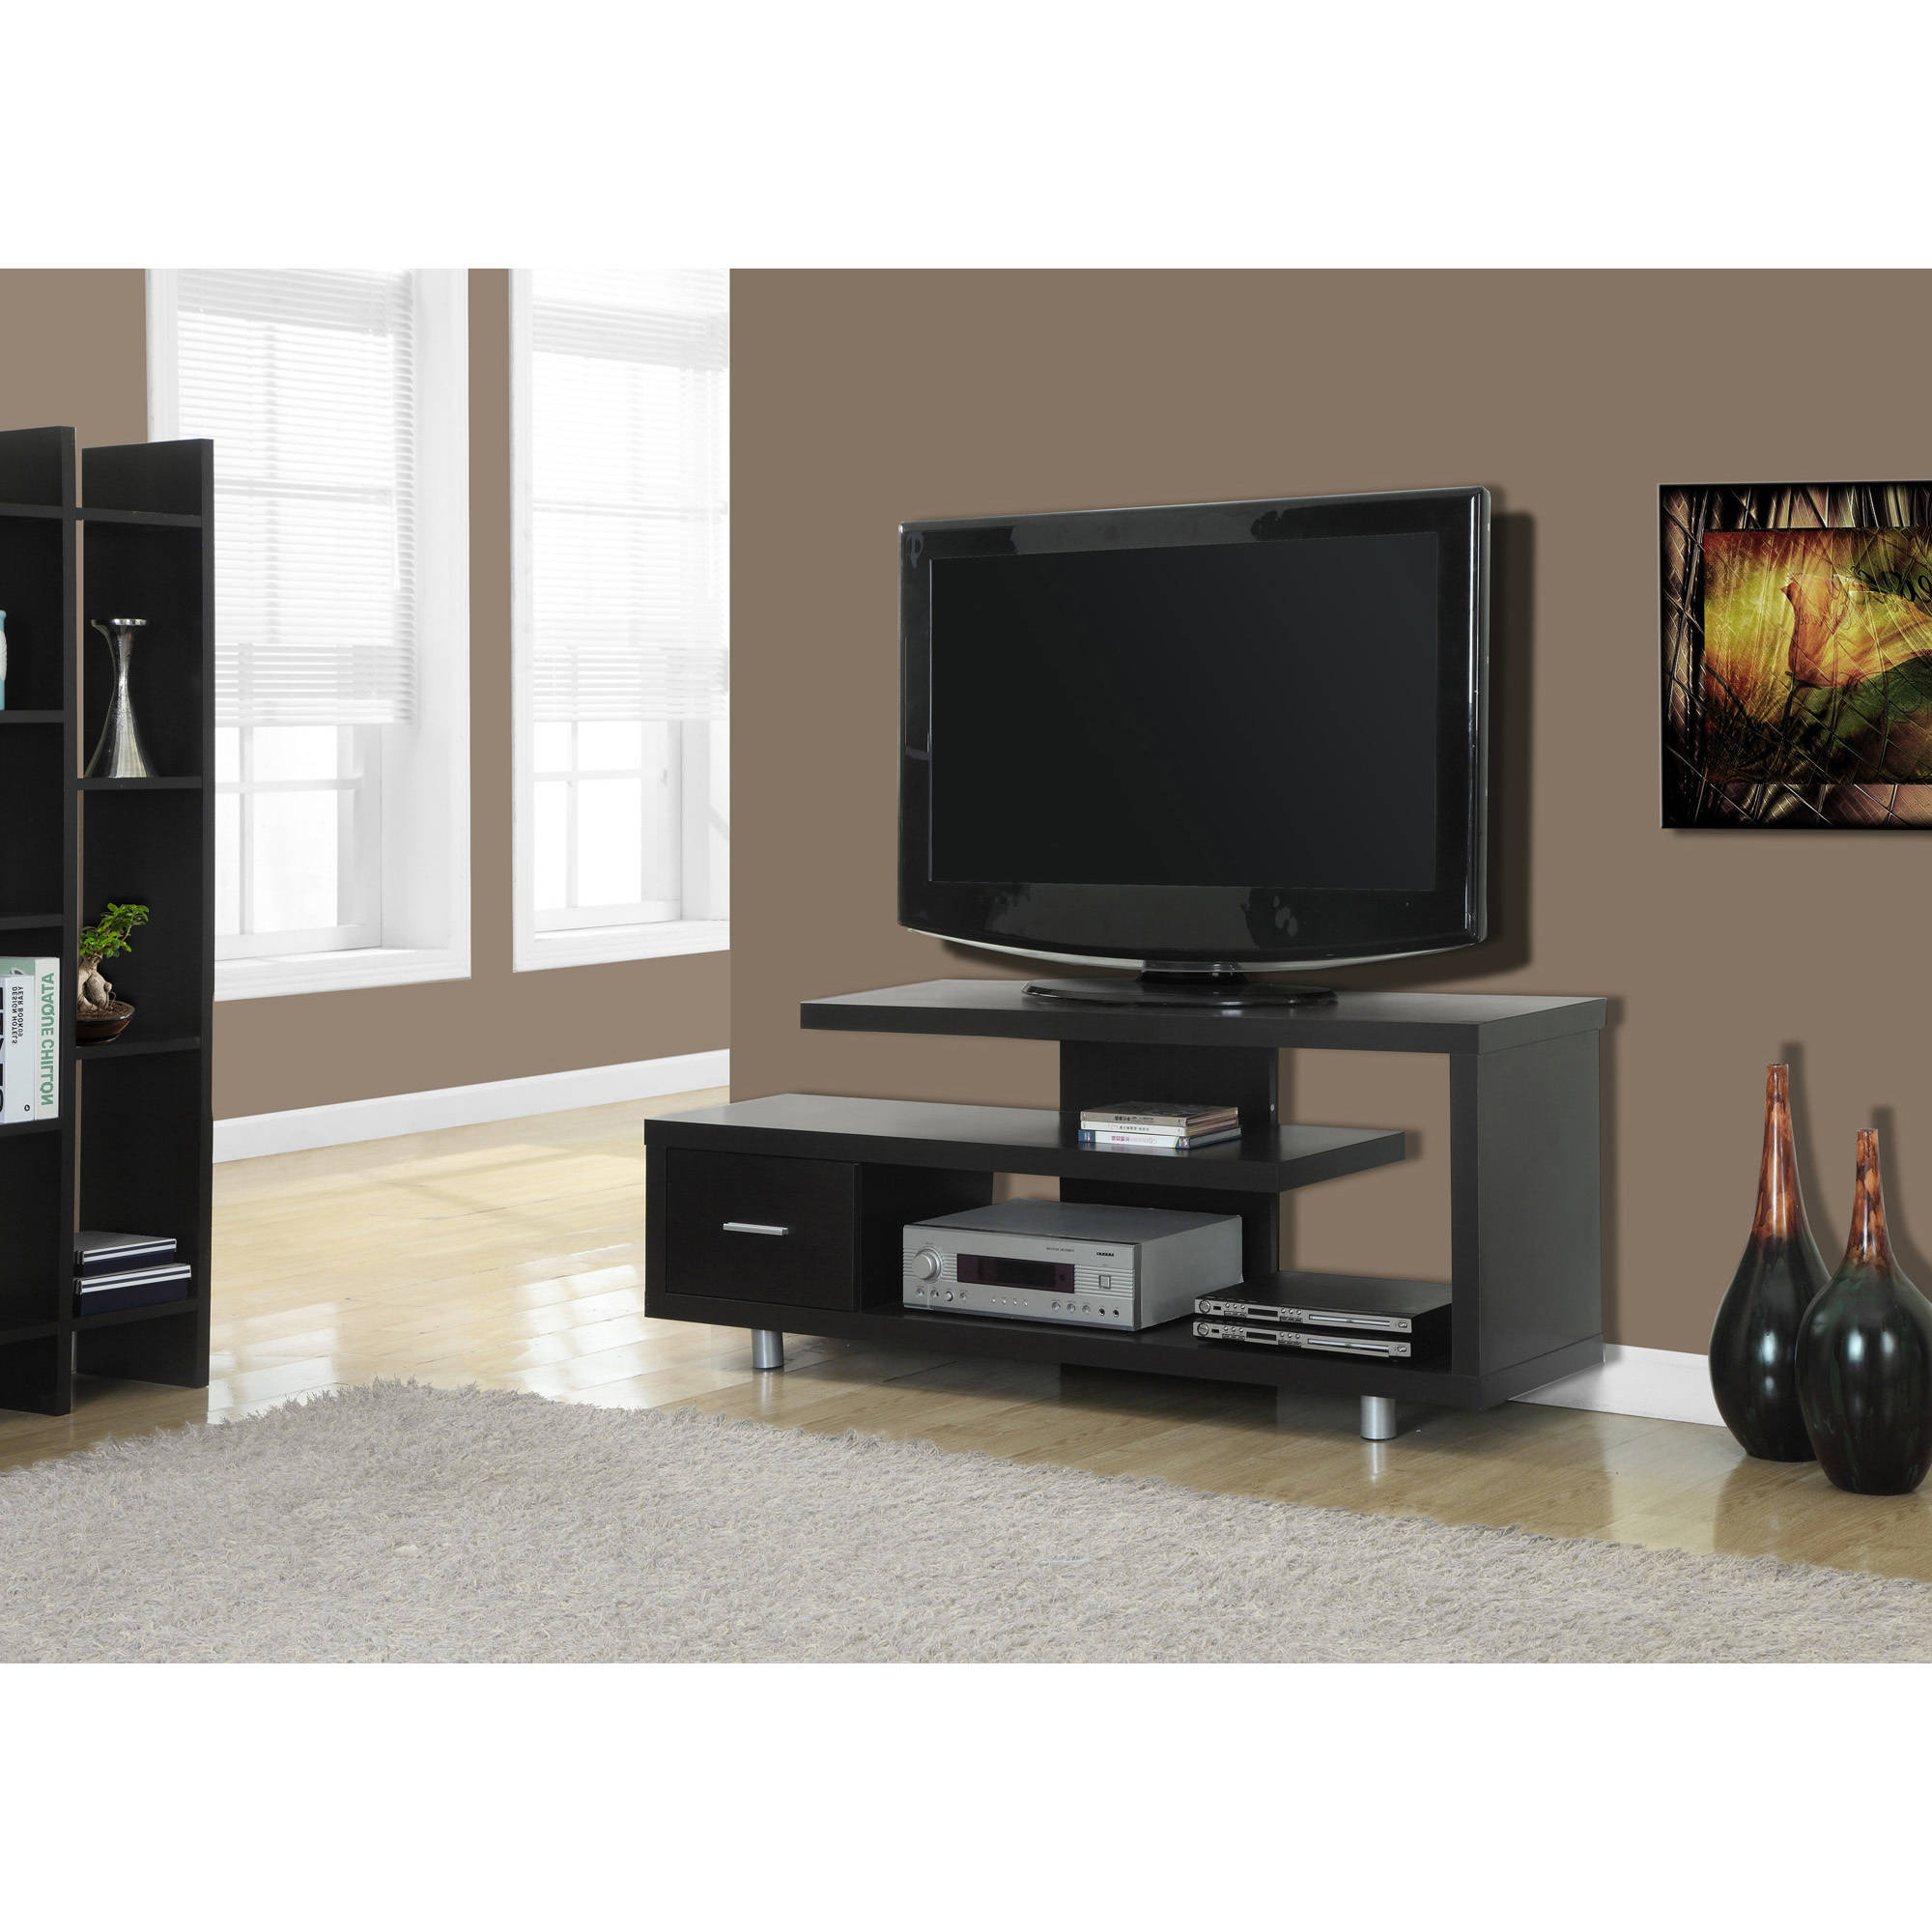 "Maddy 60 Inch Tv Stands Intended For Most Recent Monarch Tv Stand White With 1 Drawer For Tvs Up To 47""l – Walmart (View 5 of 20)"